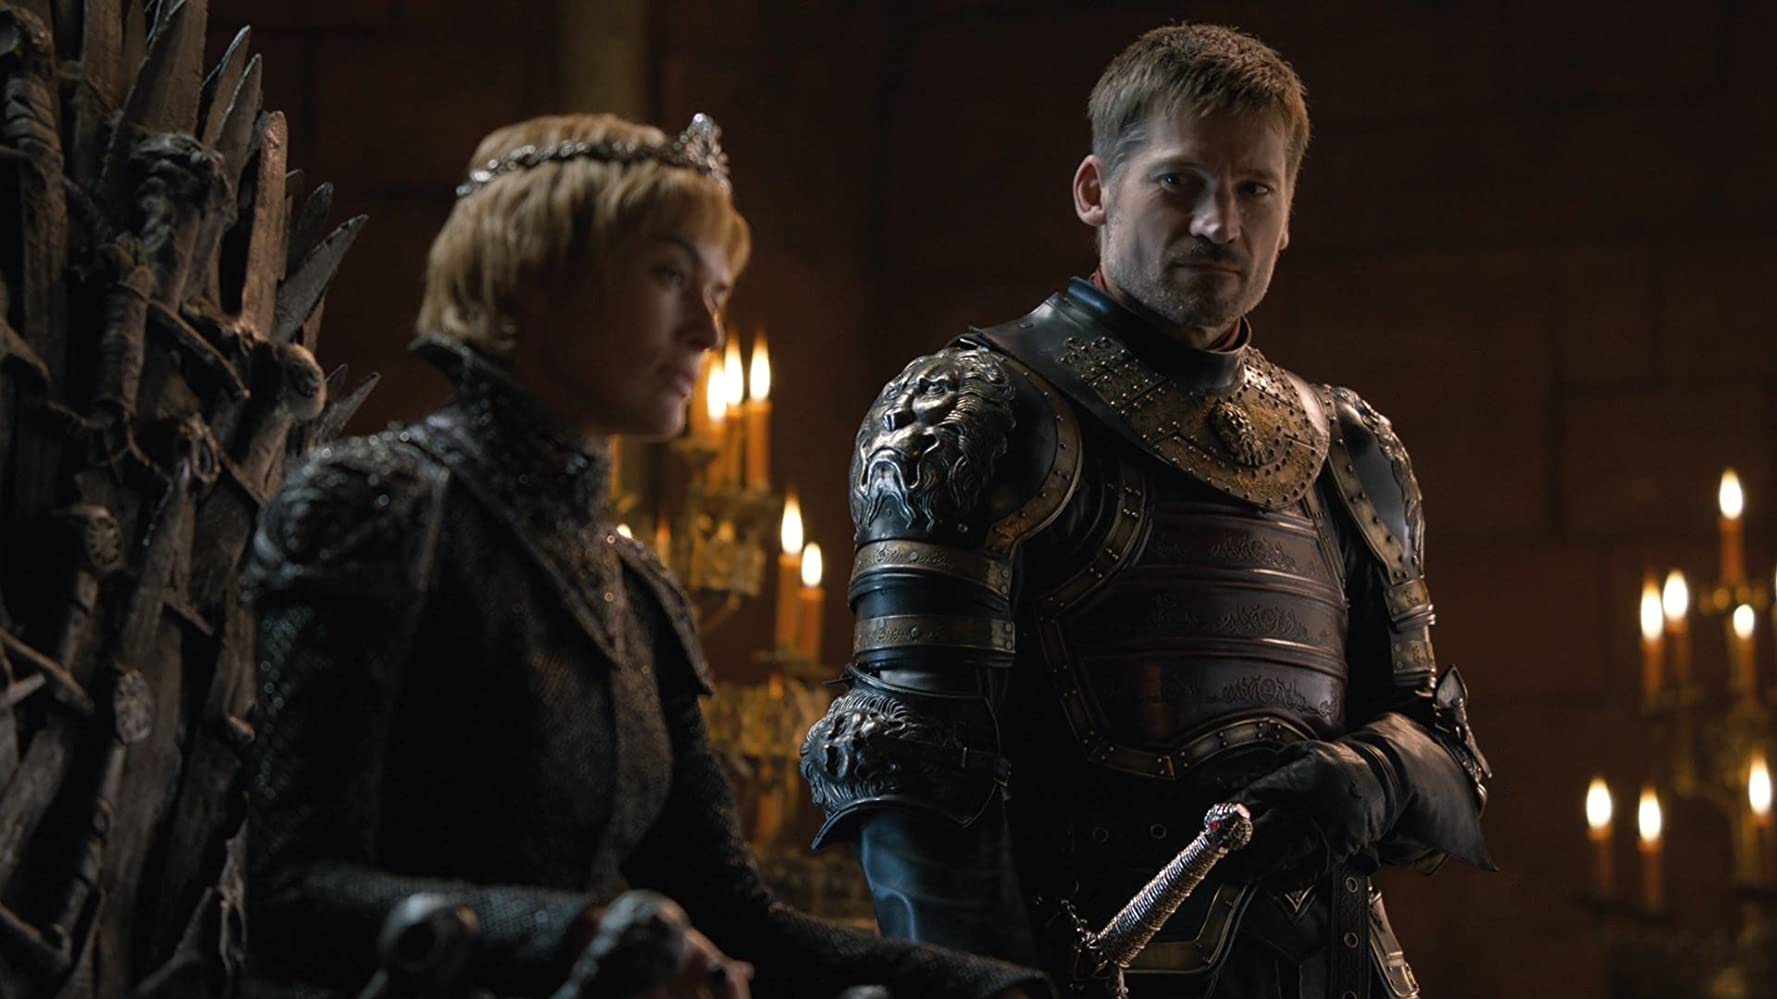 Nikolaj Coster-Waldau and Lena Headey in Game of Thrones (2011)